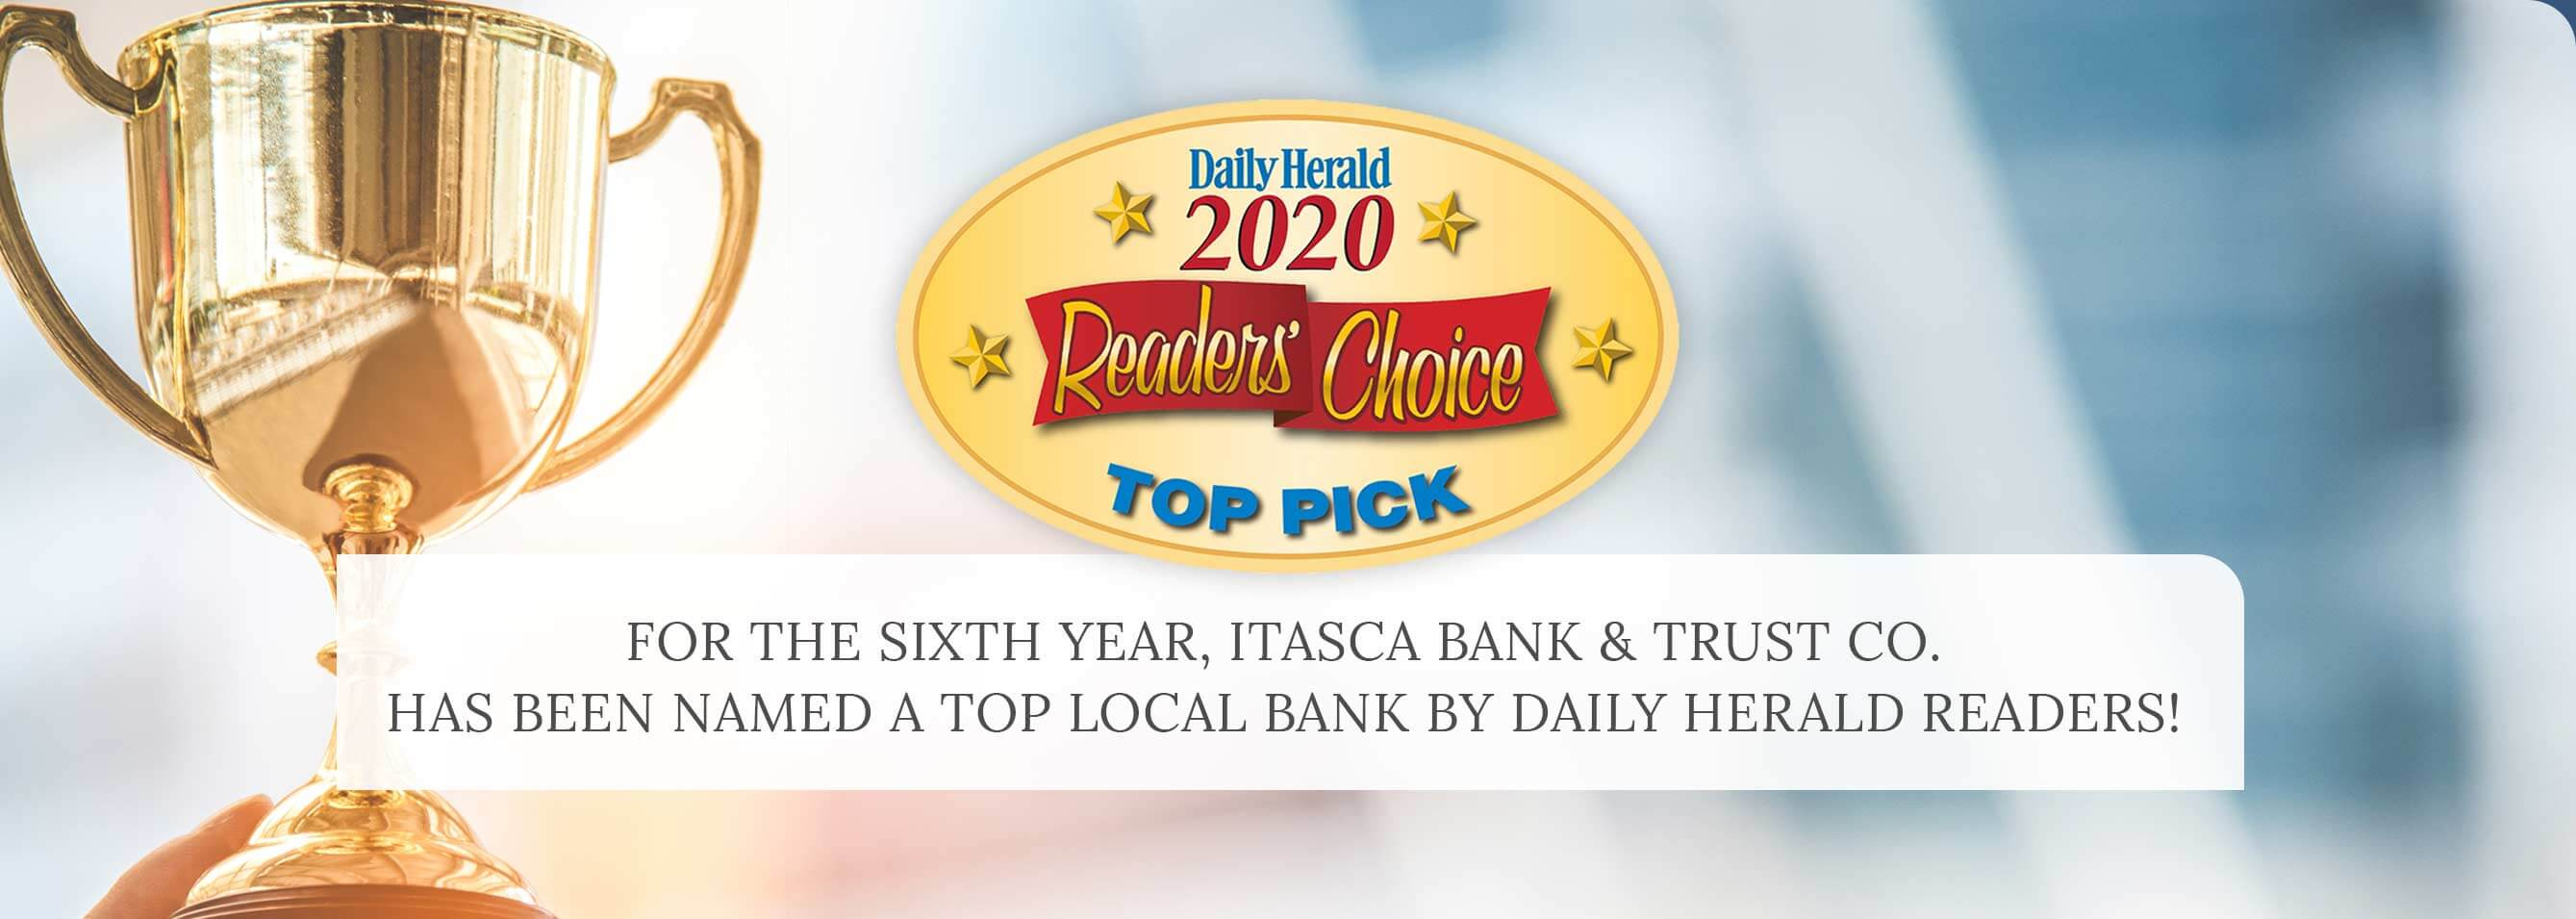 For the sixth year, Itasca Bank & Trust Co. has been named a top local bank by Daily Herald readers!